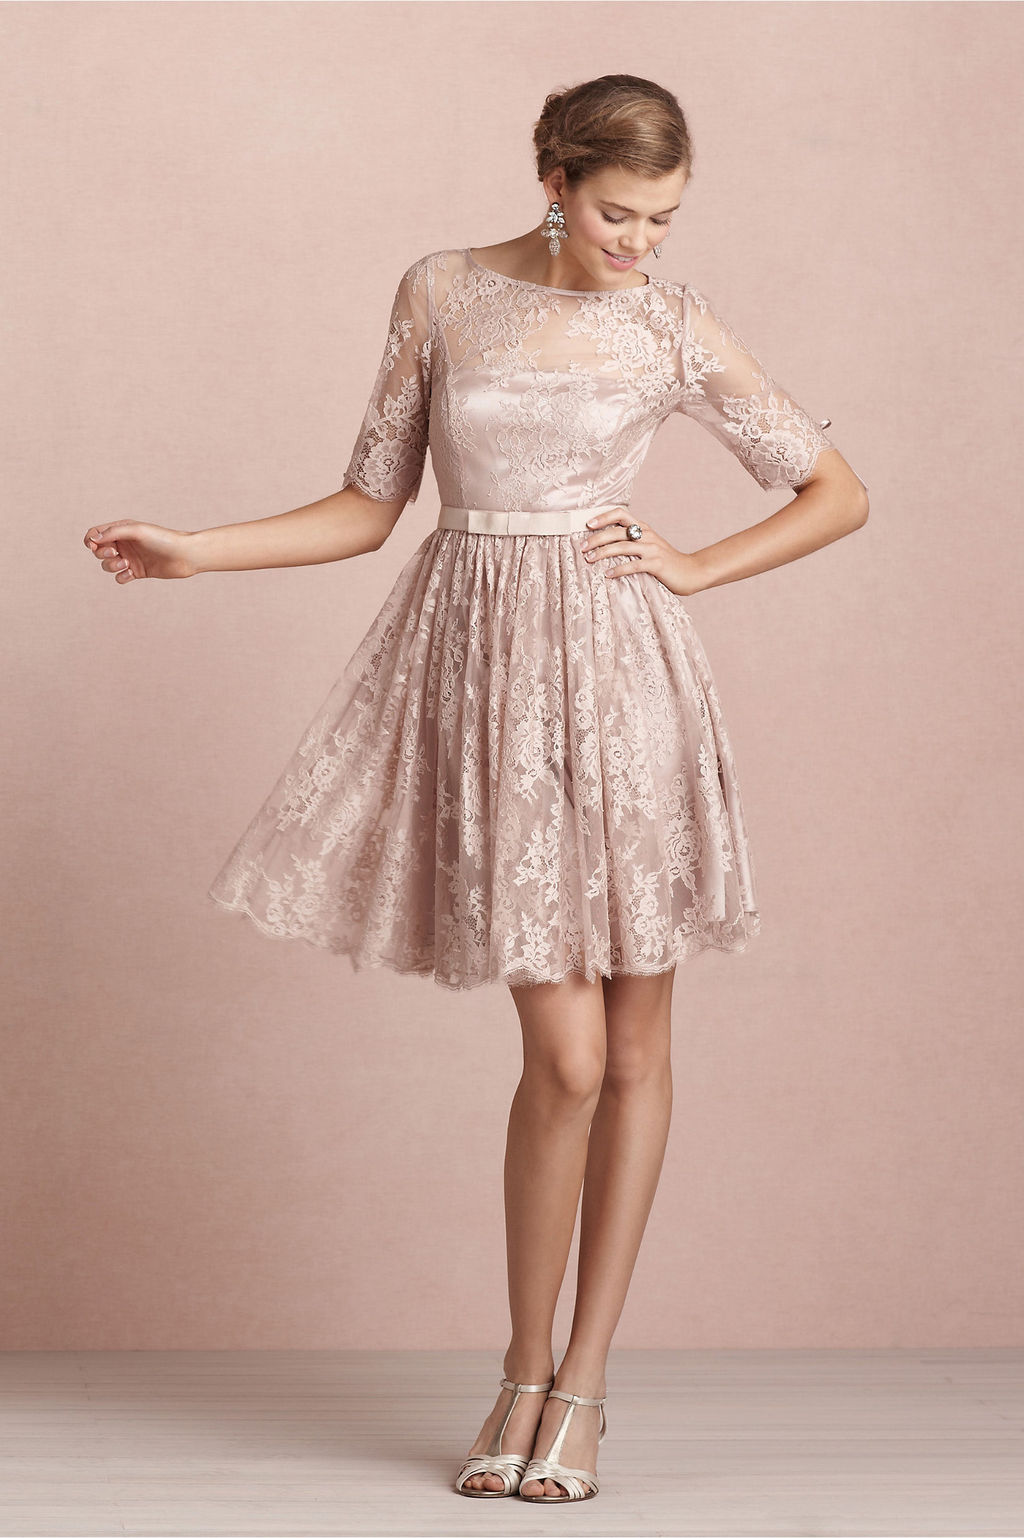 http://www.aislestyle.co.uk/bateau-neck-long-sleeved-lace-pattern-bridesmaid-dress-with-bow-ribbon-p-5649.html